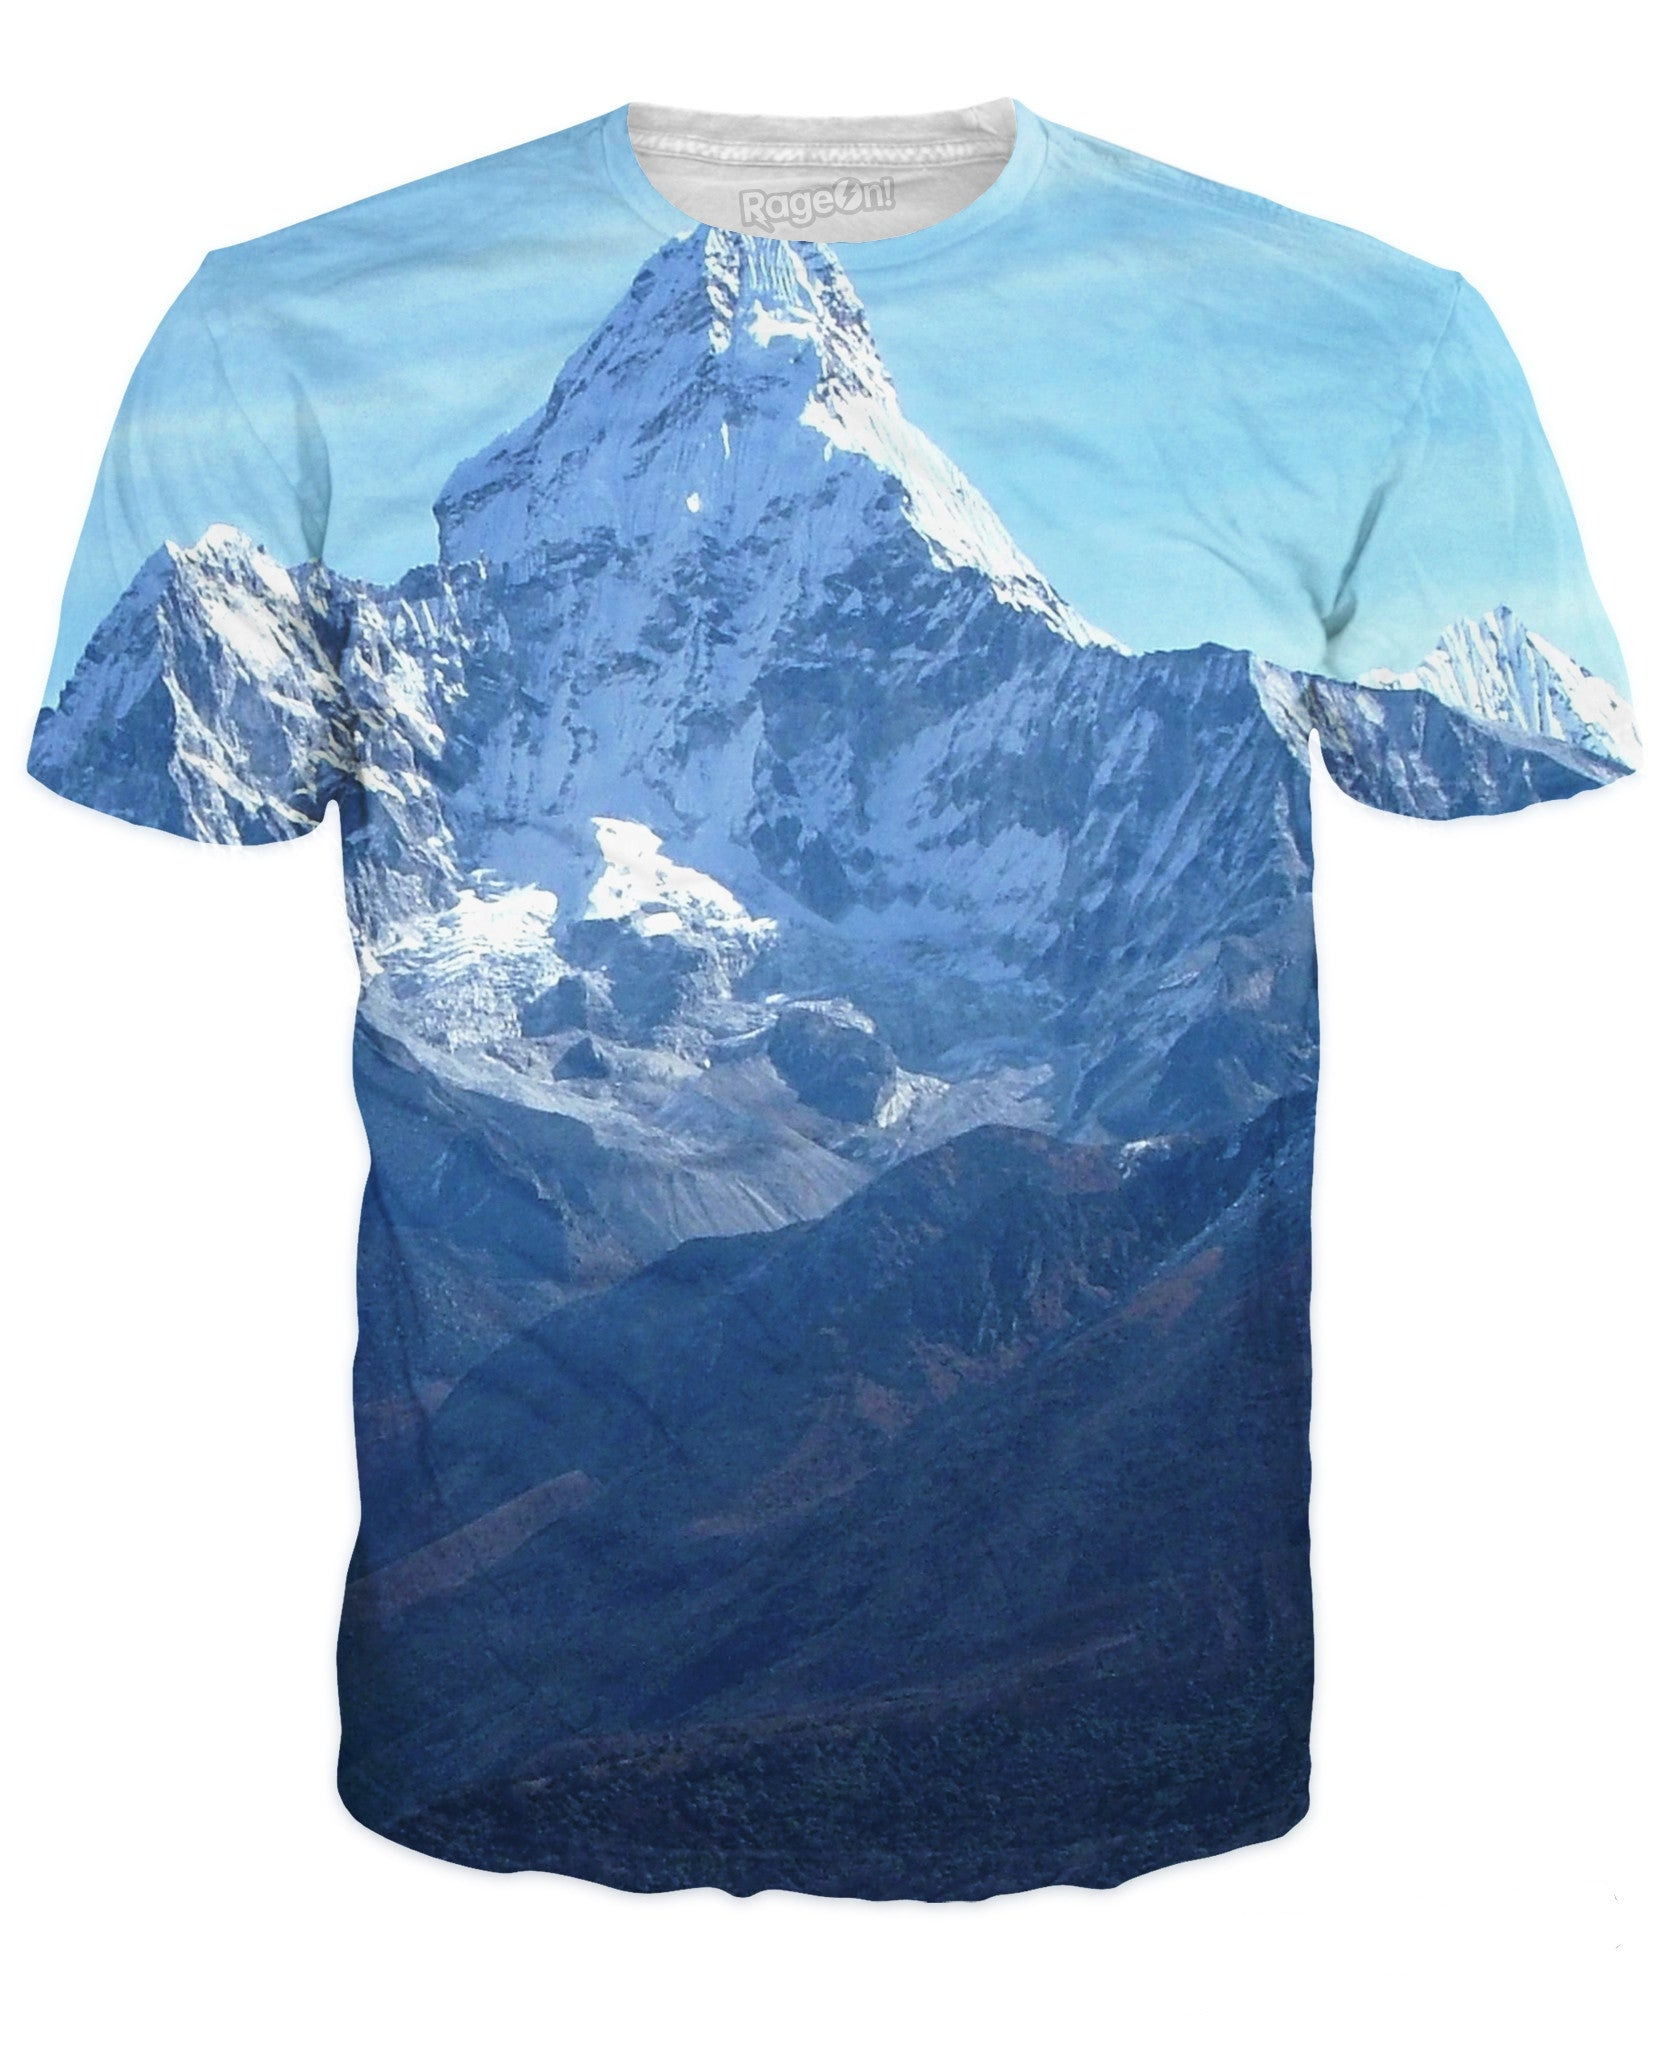 Everest T-Shirt - TShirtsRUS.co